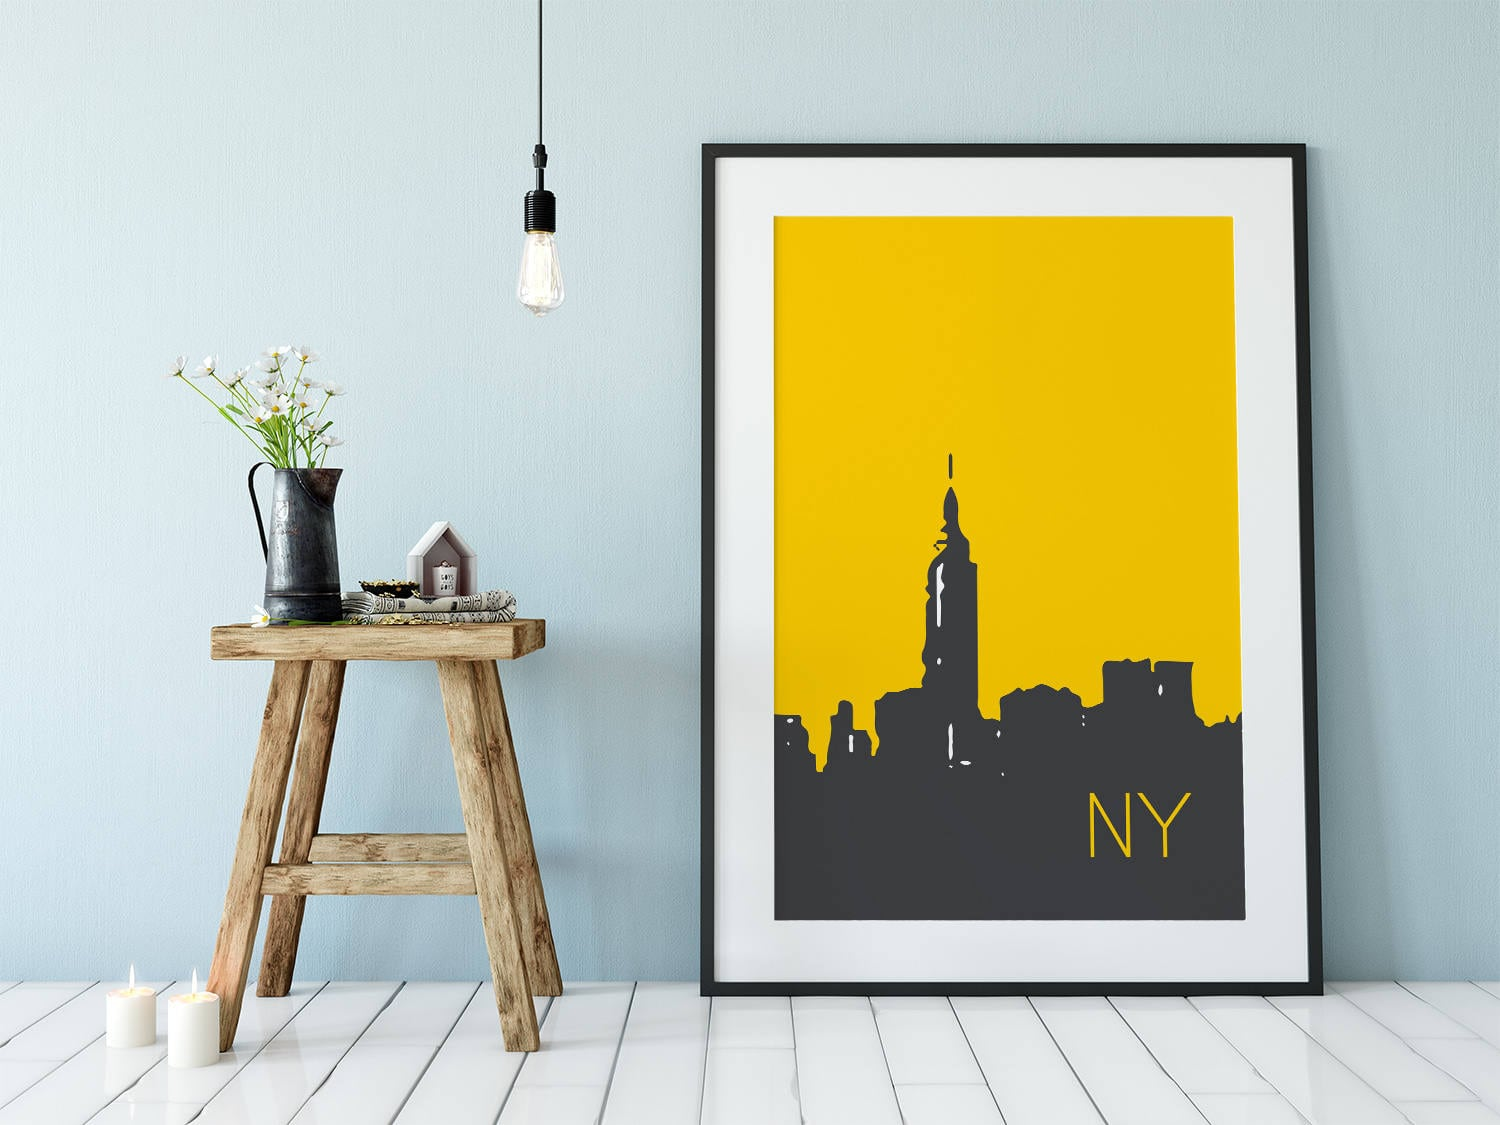 NYC Art New York City Art Digital Prints Print New York